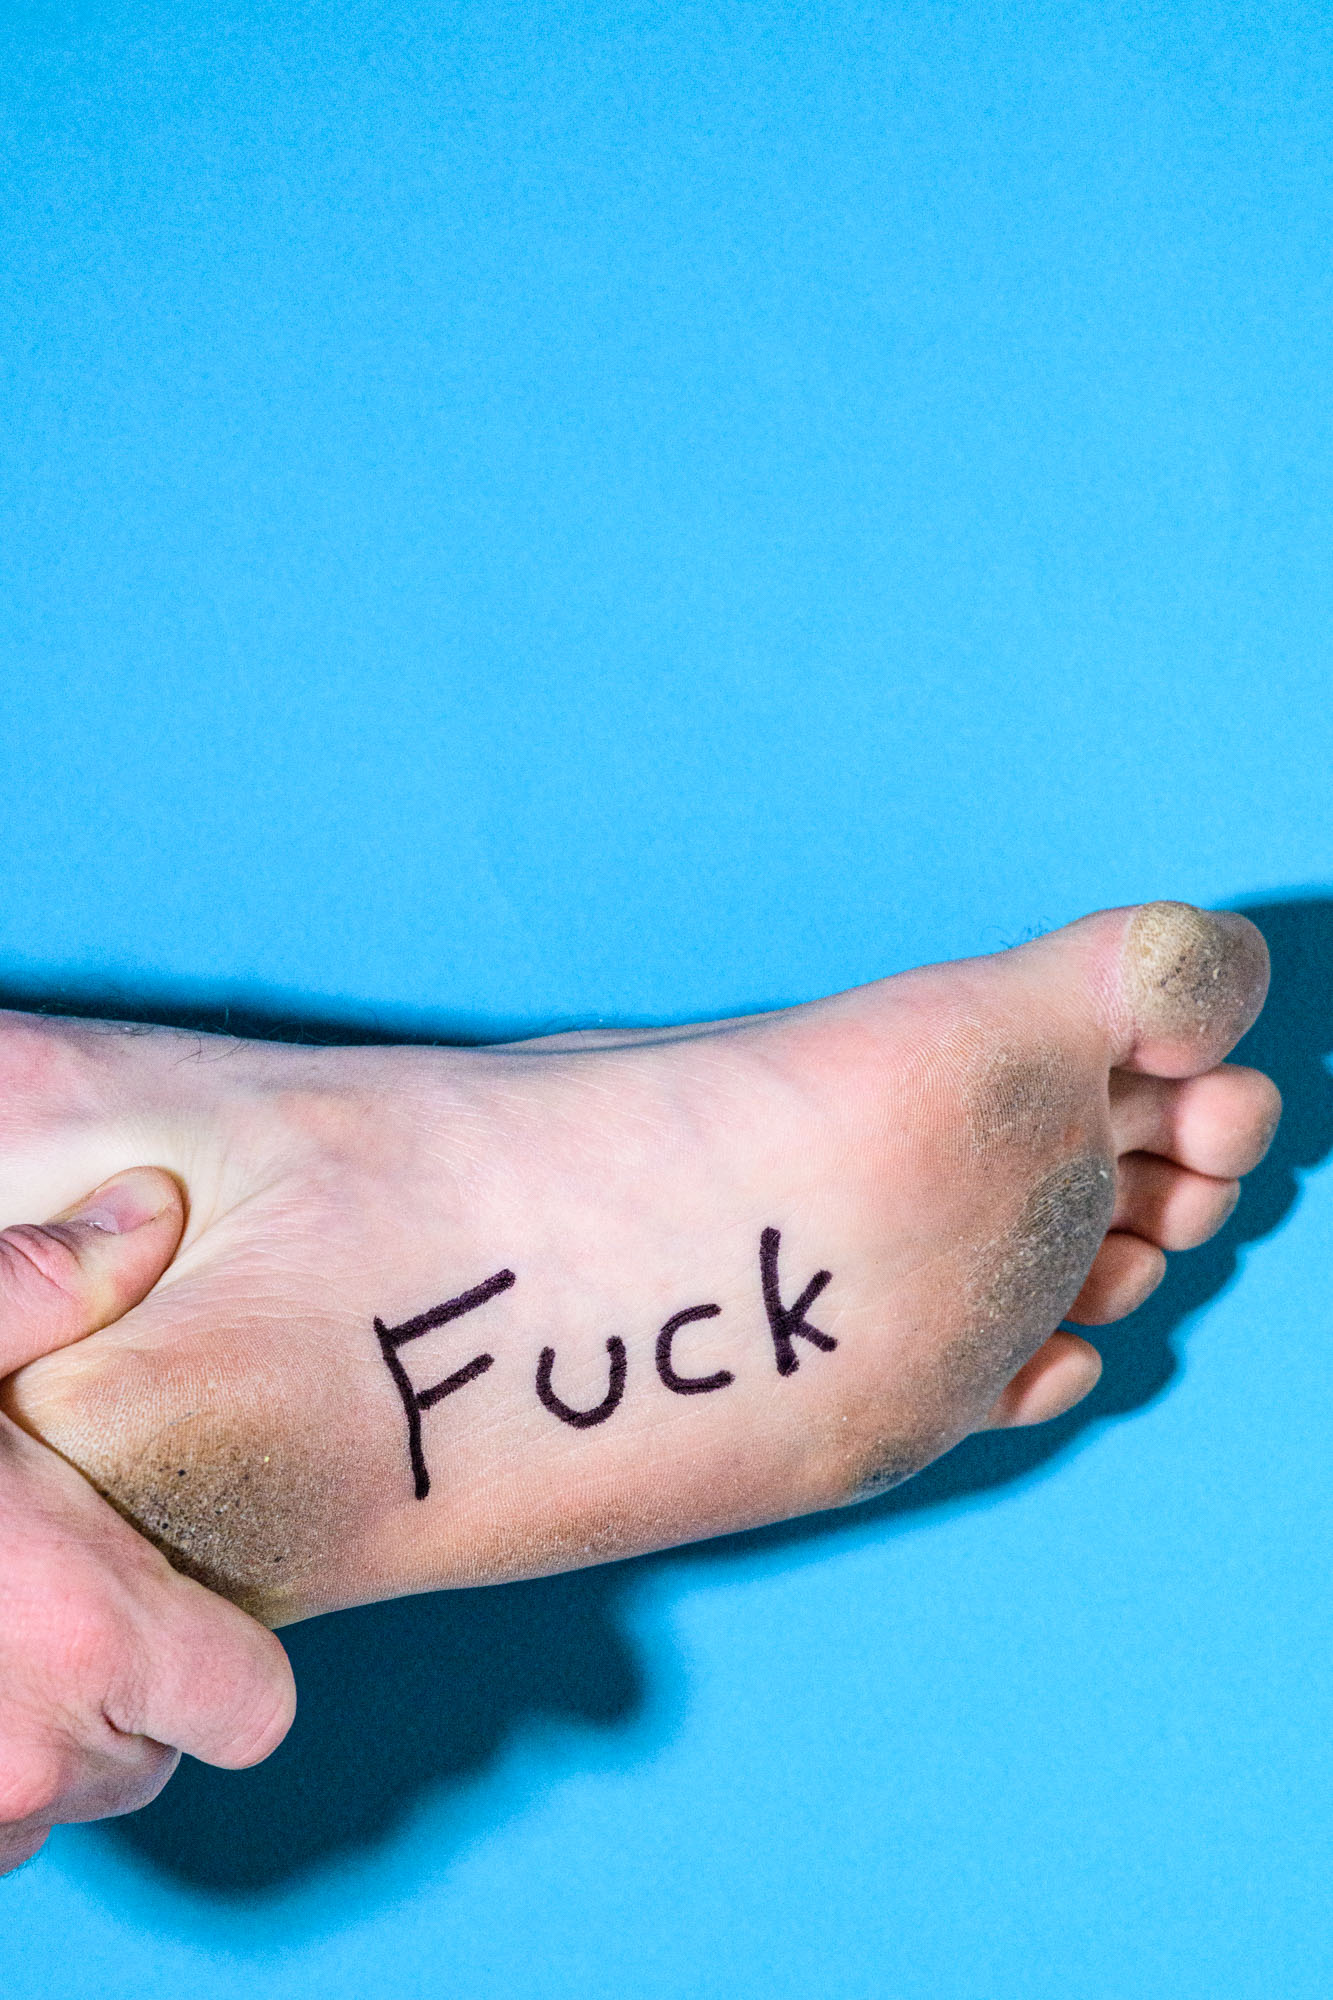 the word 'fuck' is written on the bottom of the artist's foot against a blue back drop